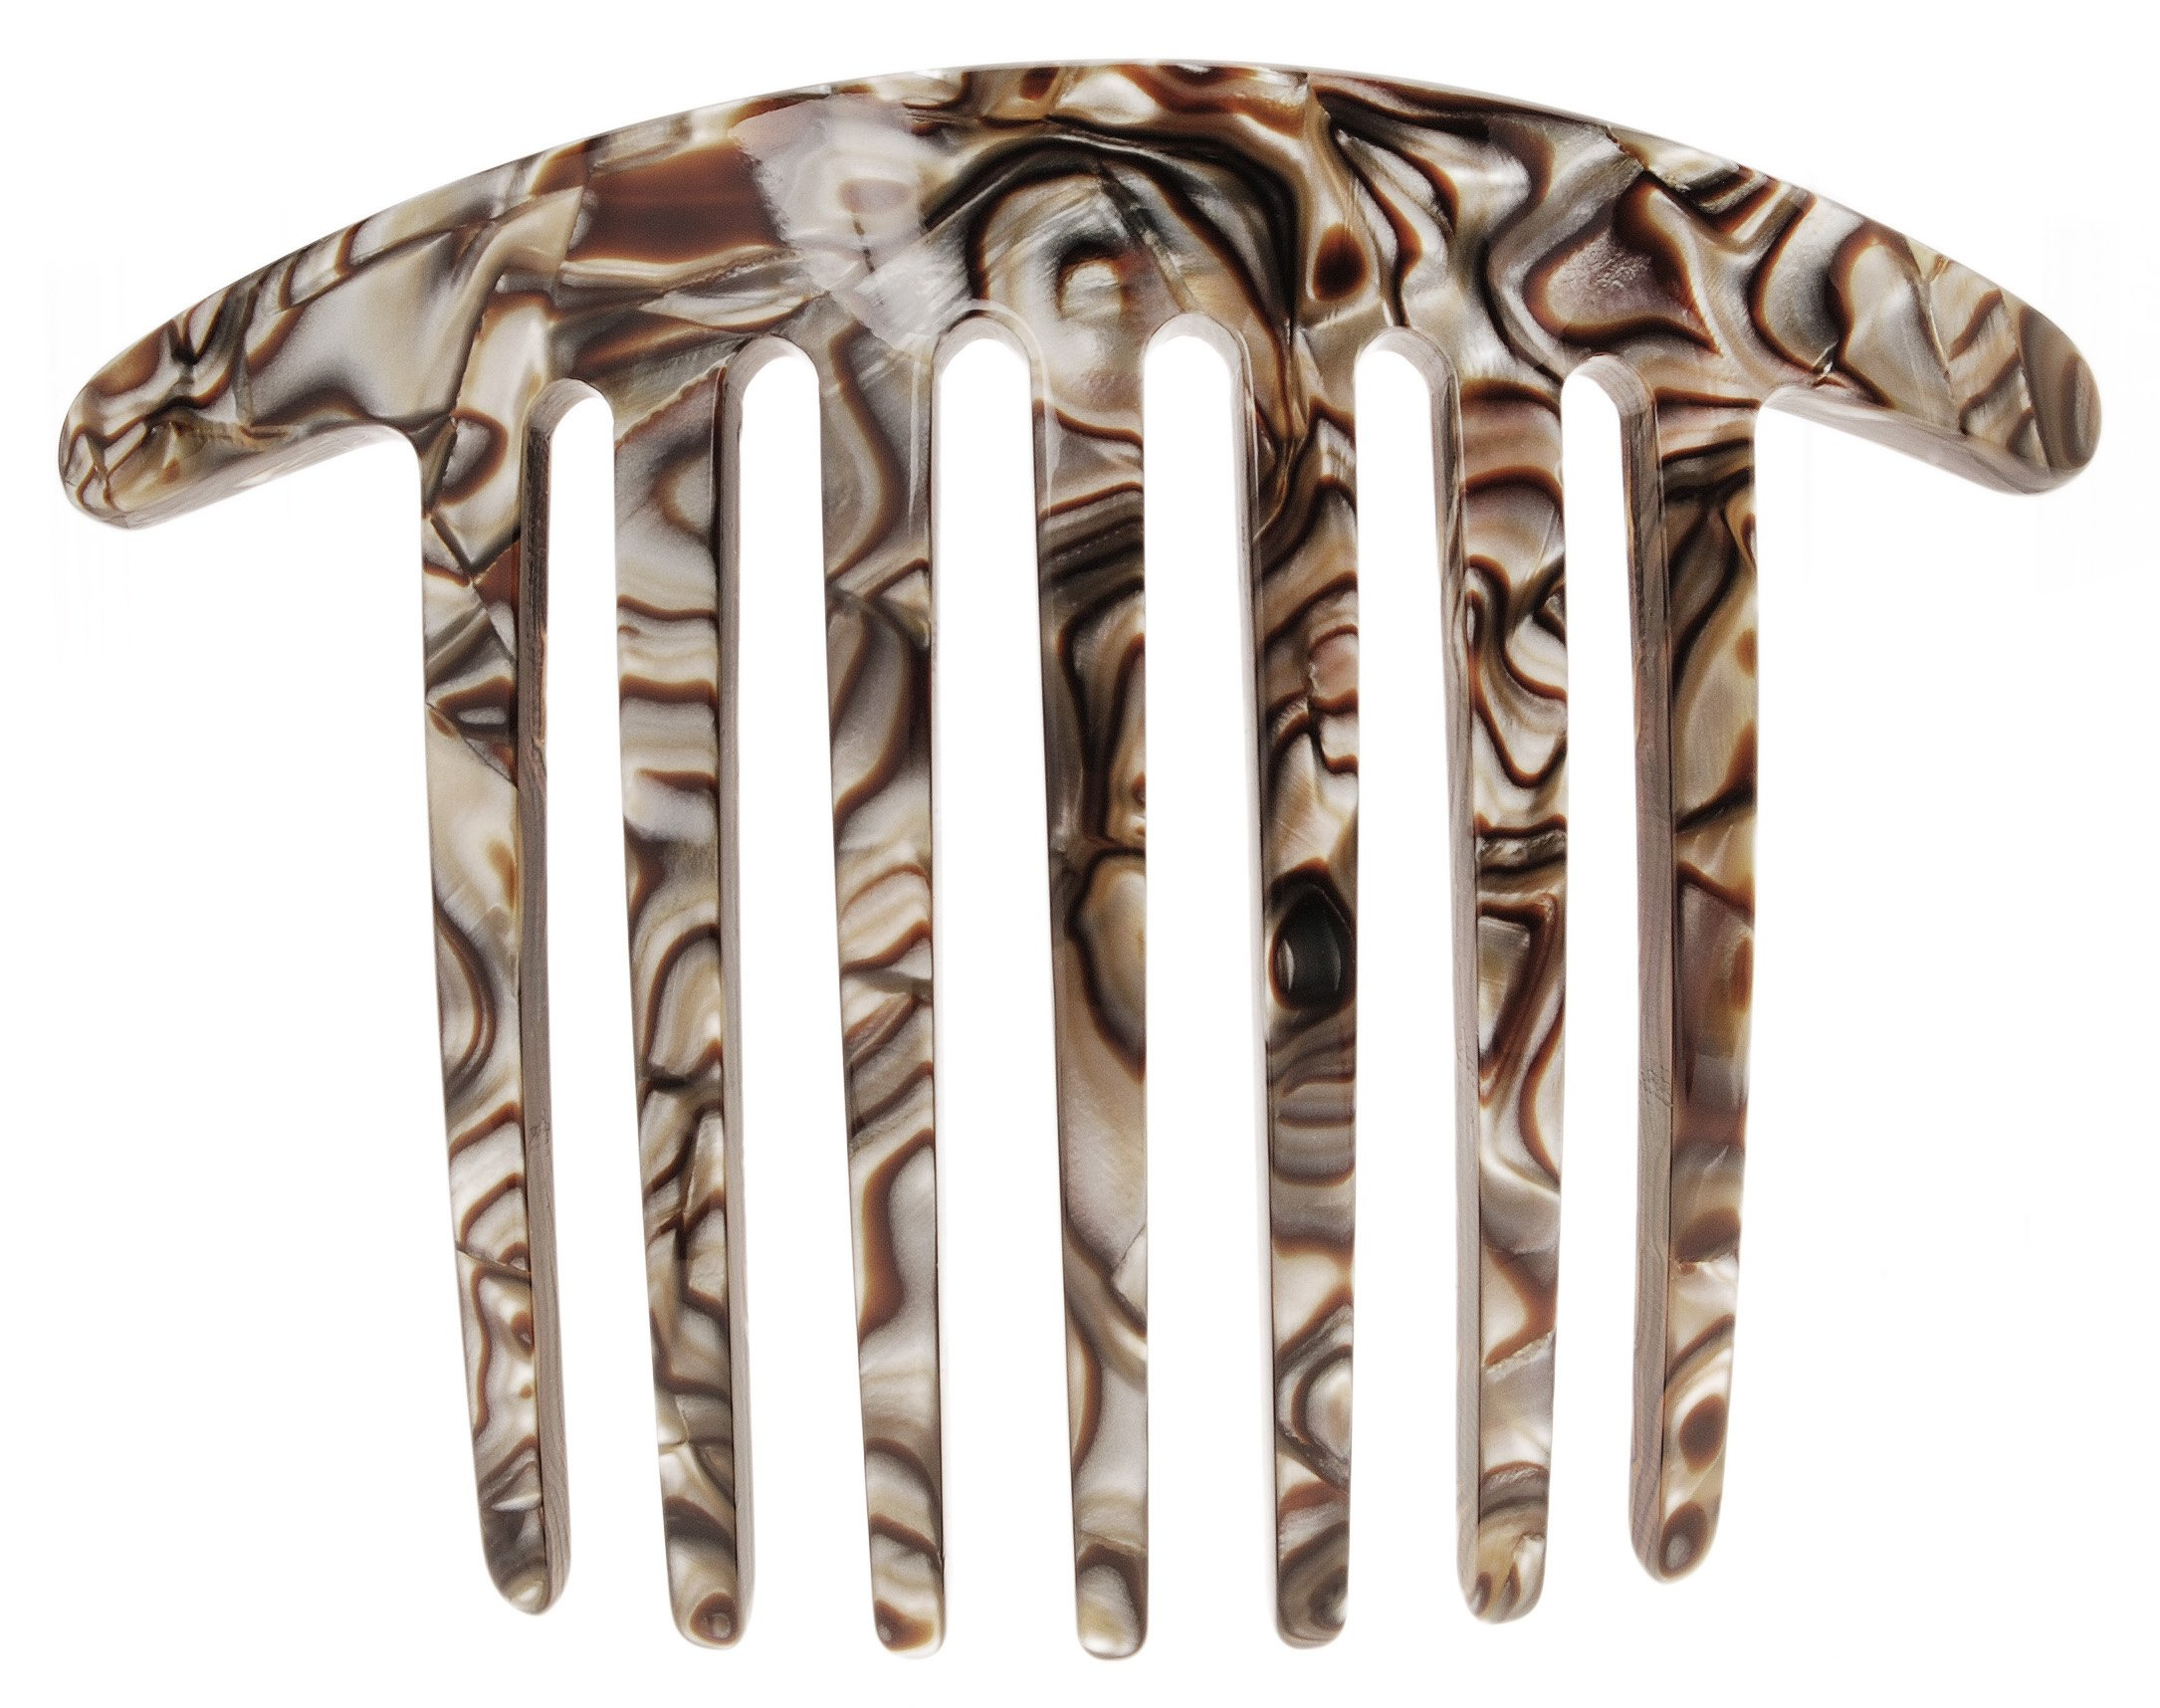 France Luxe Handmade French Twist Comb - Onyx